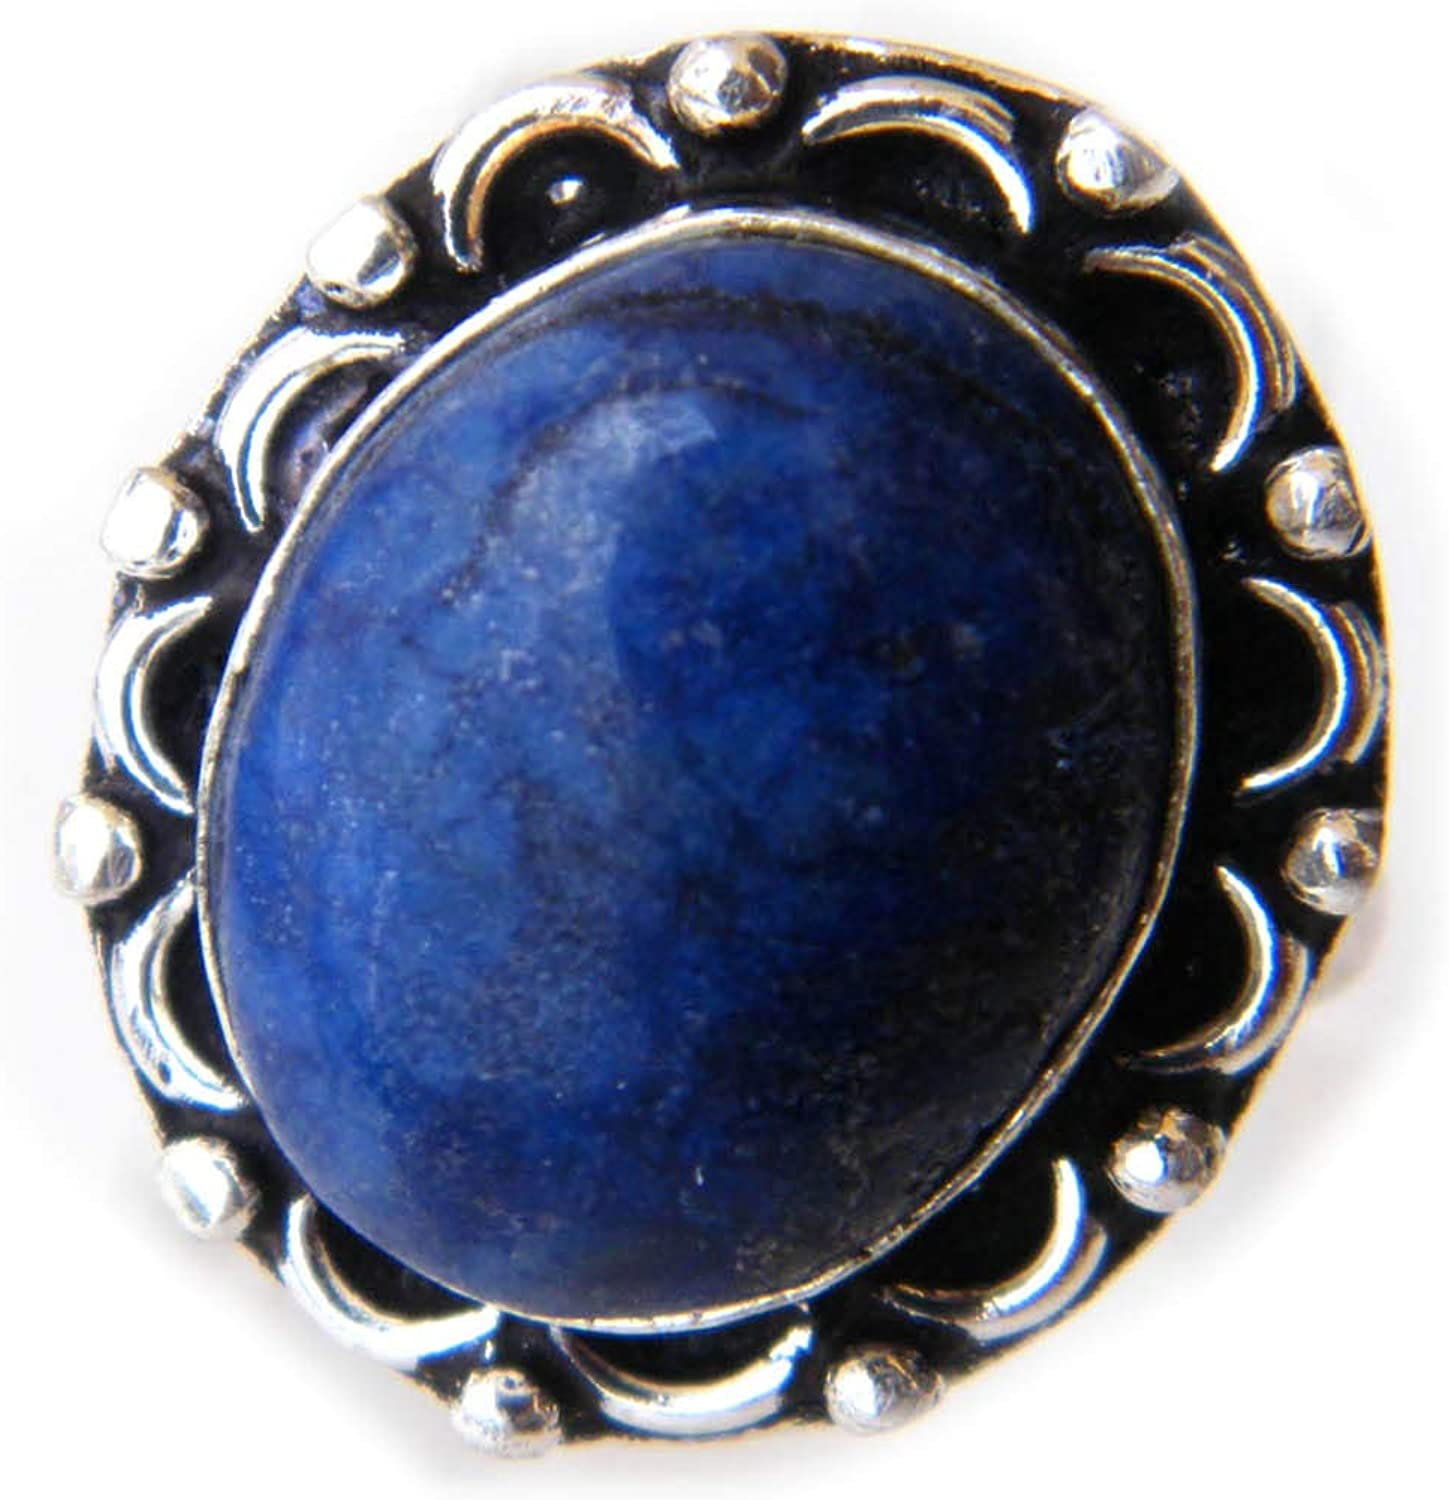 Thebestjewellery Lapis Lazuli cabochon Ring, Silver Plated Ring, Handmade Ring, Women Jewelry, (Size- 7.75 USA) BRS-5768